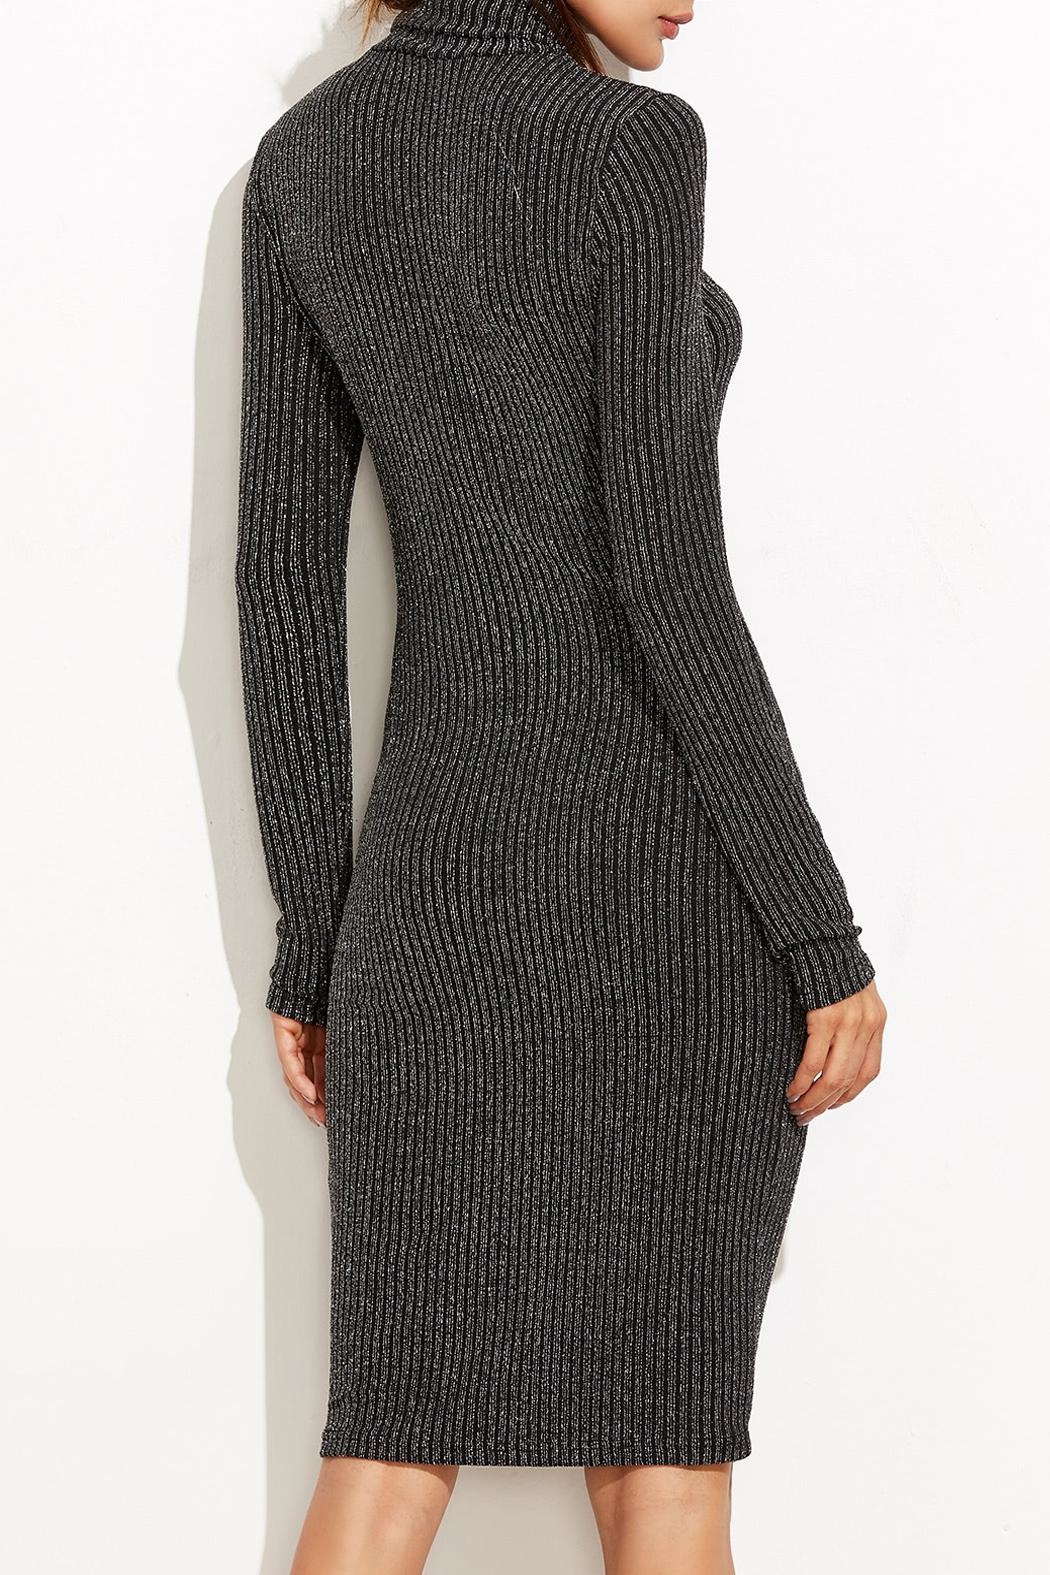 Tyche Body-Con Knit Dress - Back Cropped Image